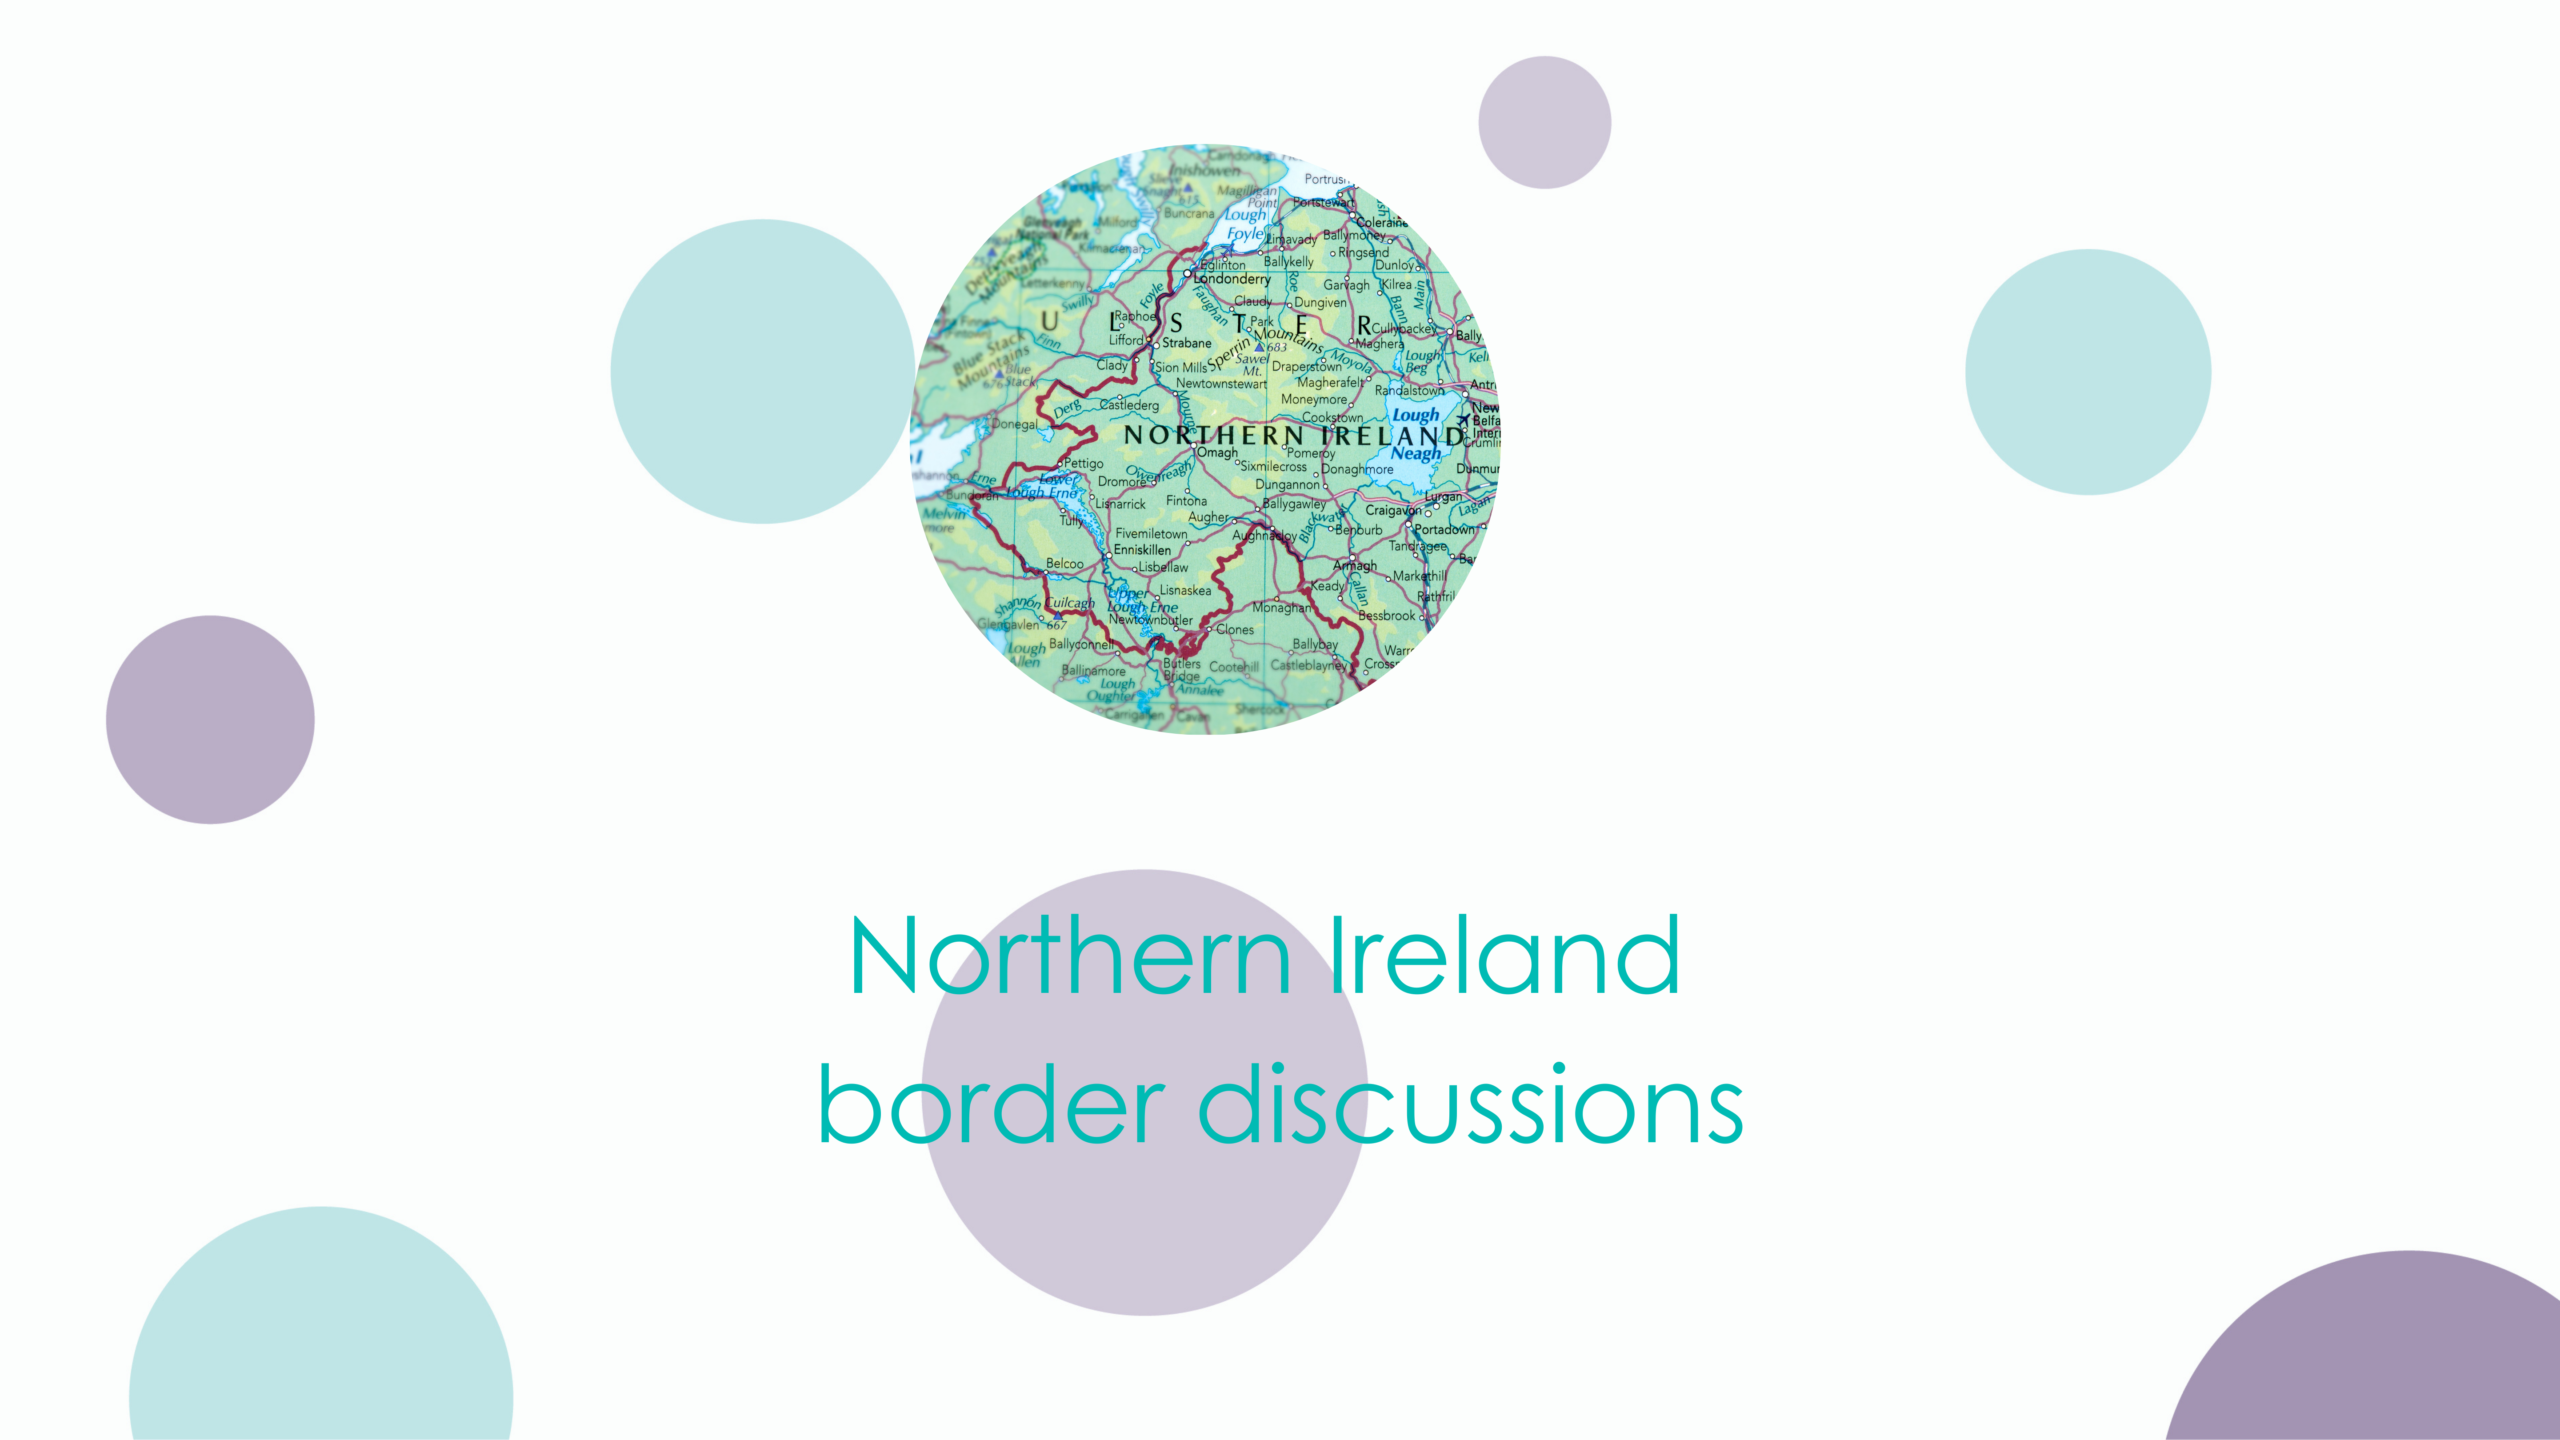 Northern Ireland border discussions